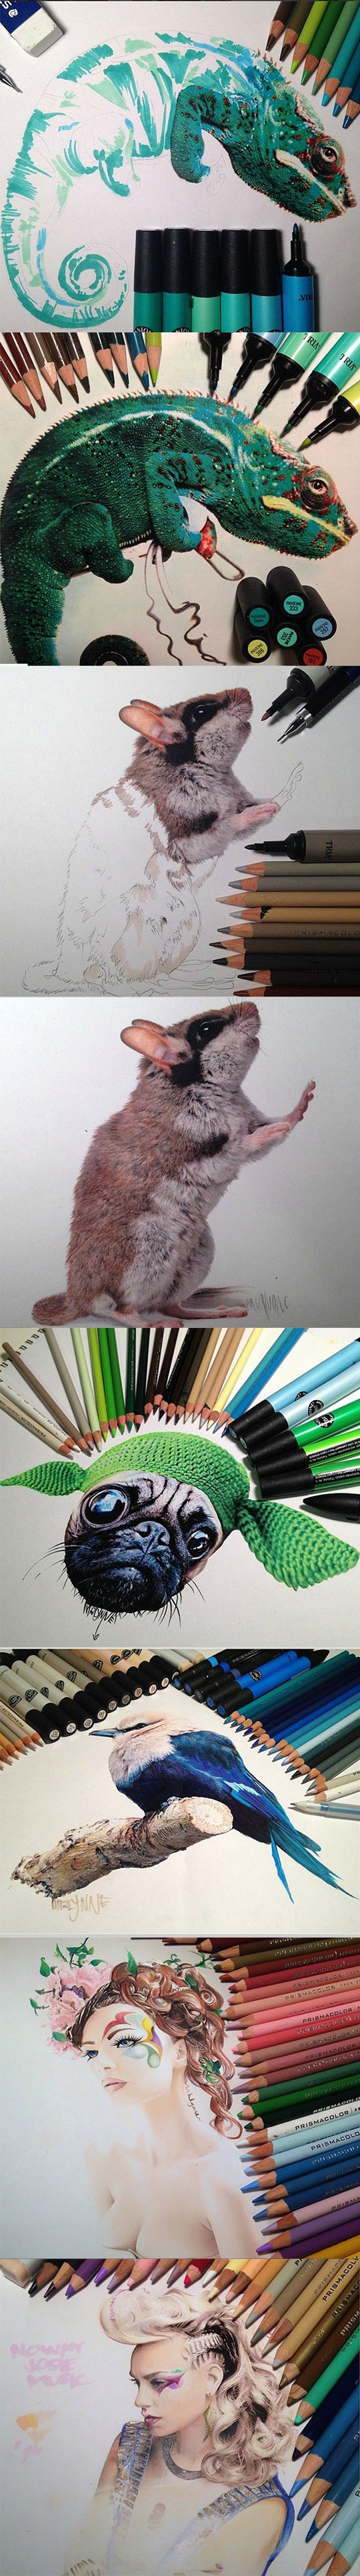 funny-painting-pencils-chameleon-mouse